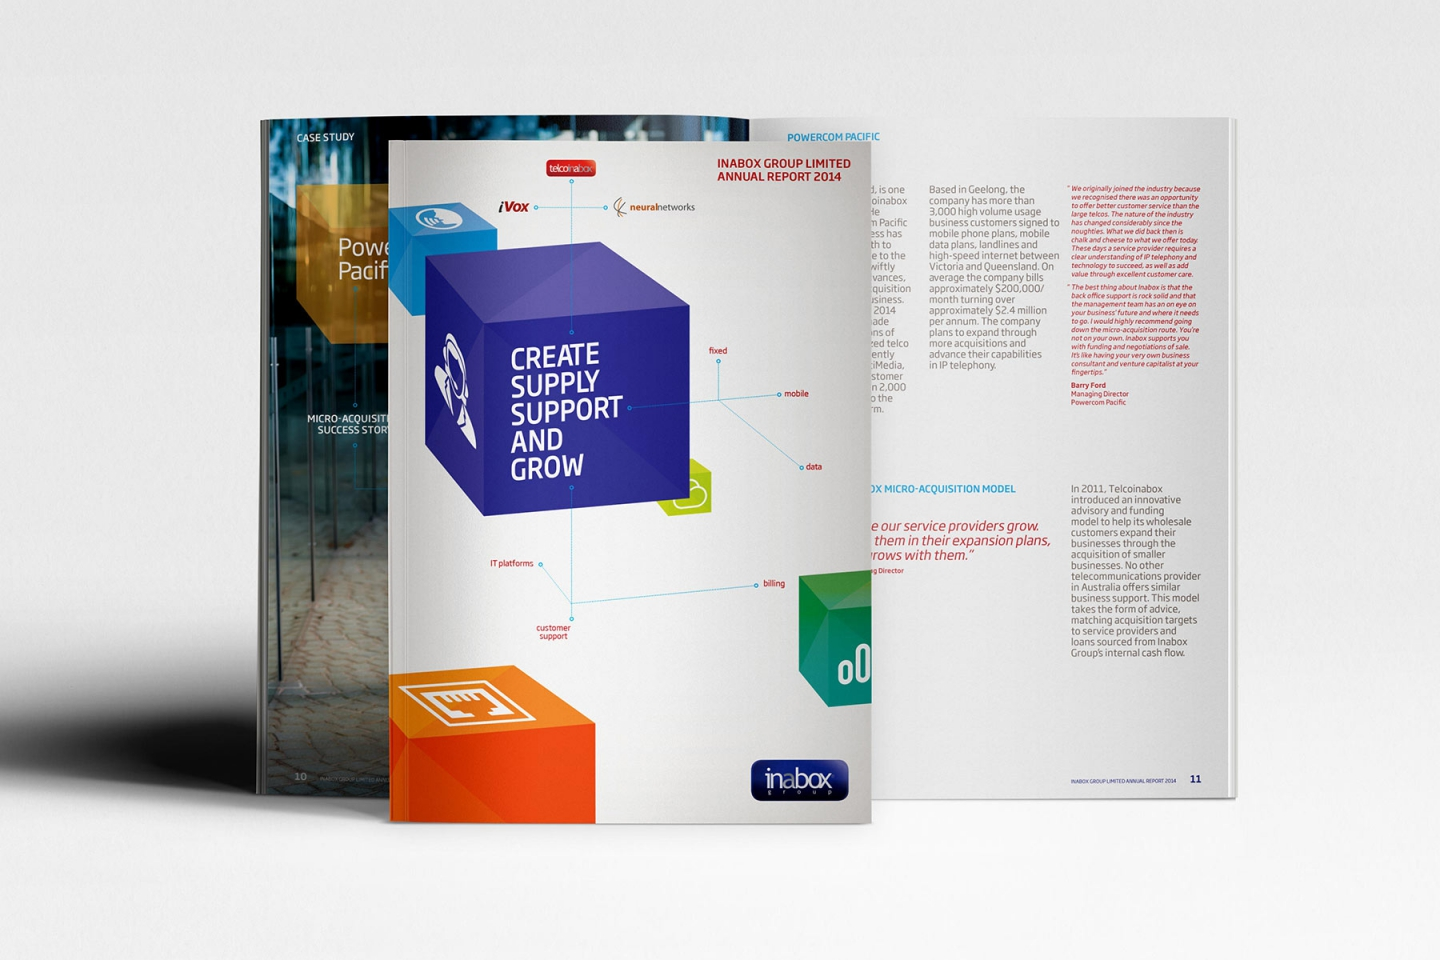 Inabox Group: Annual Report 2014